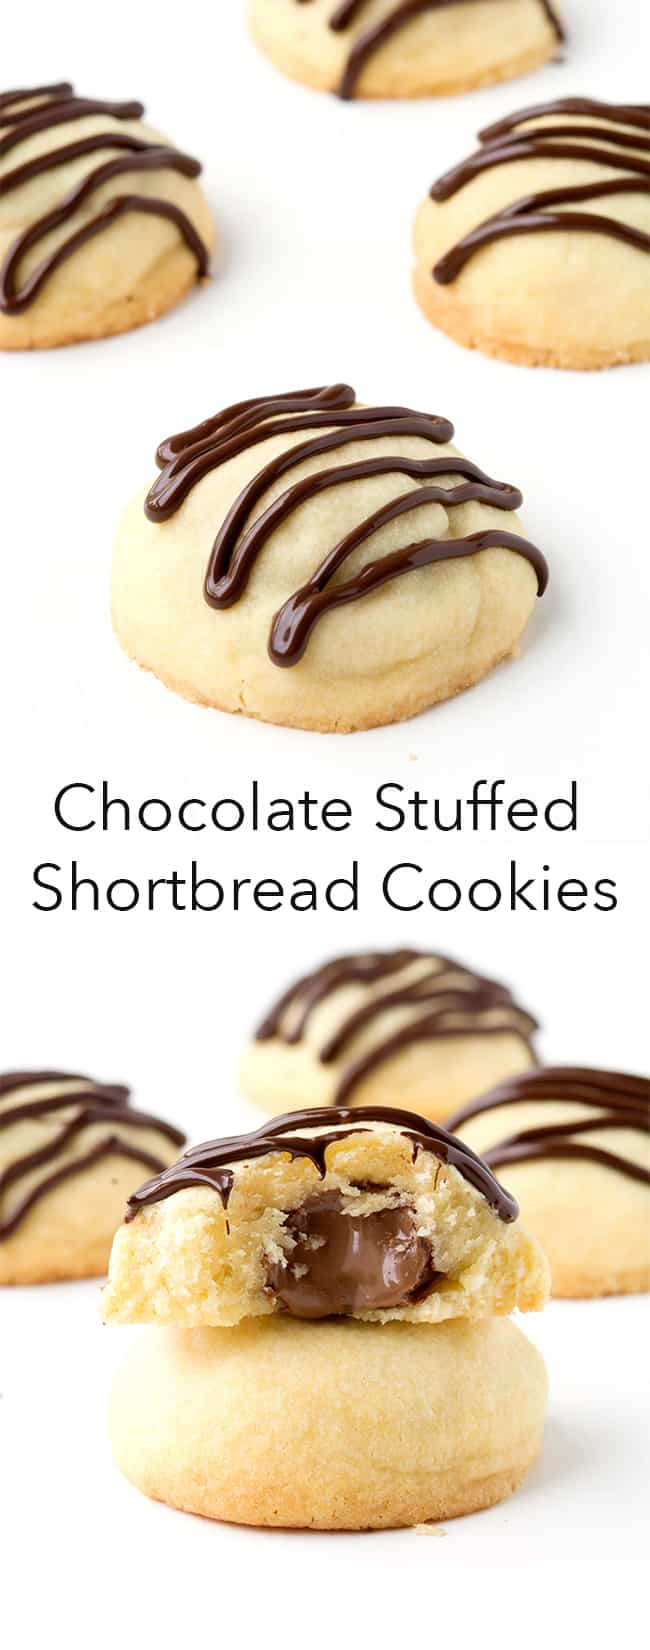 Chocolate Stuffed Shortbread Cookies | Sweetest Menu